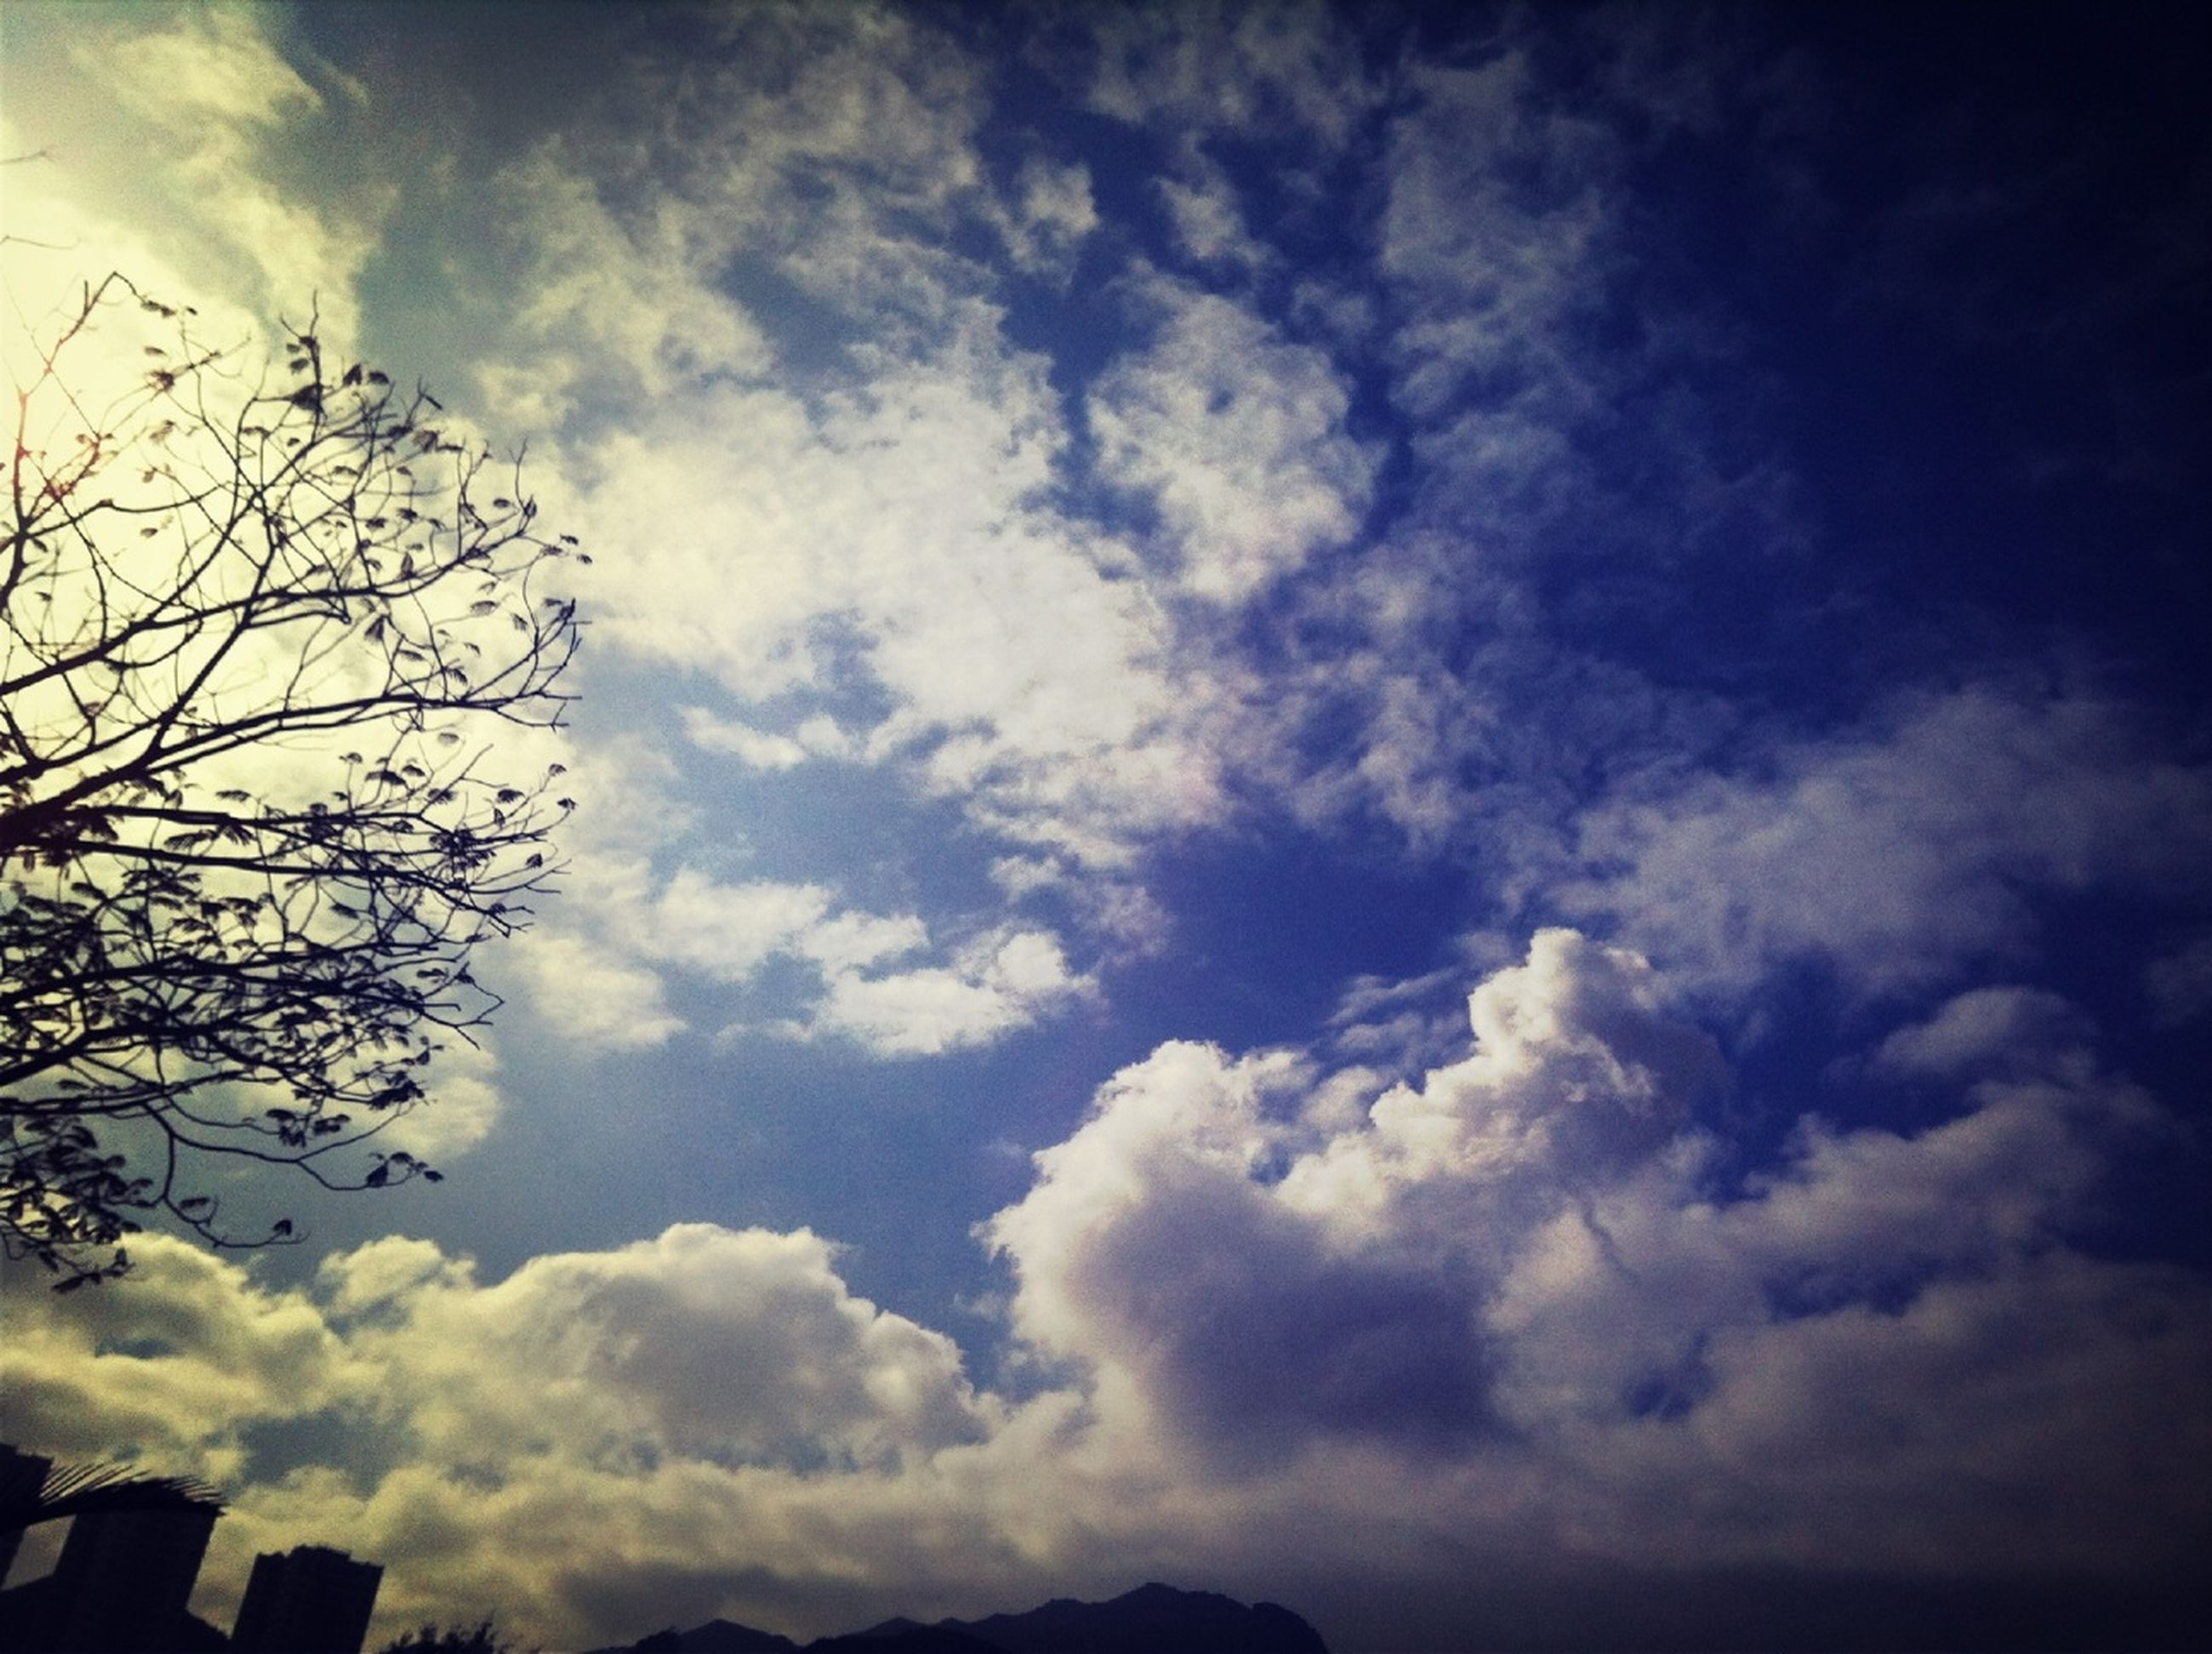 sky, low angle view, cloud - sky, cloudy, silhouette, beauty in nature, tranquility, nature, cloud, scenics, tranquil scene, tree, cloudscape, weather, outdoors, overcast, no people, day, idyllic, dusk